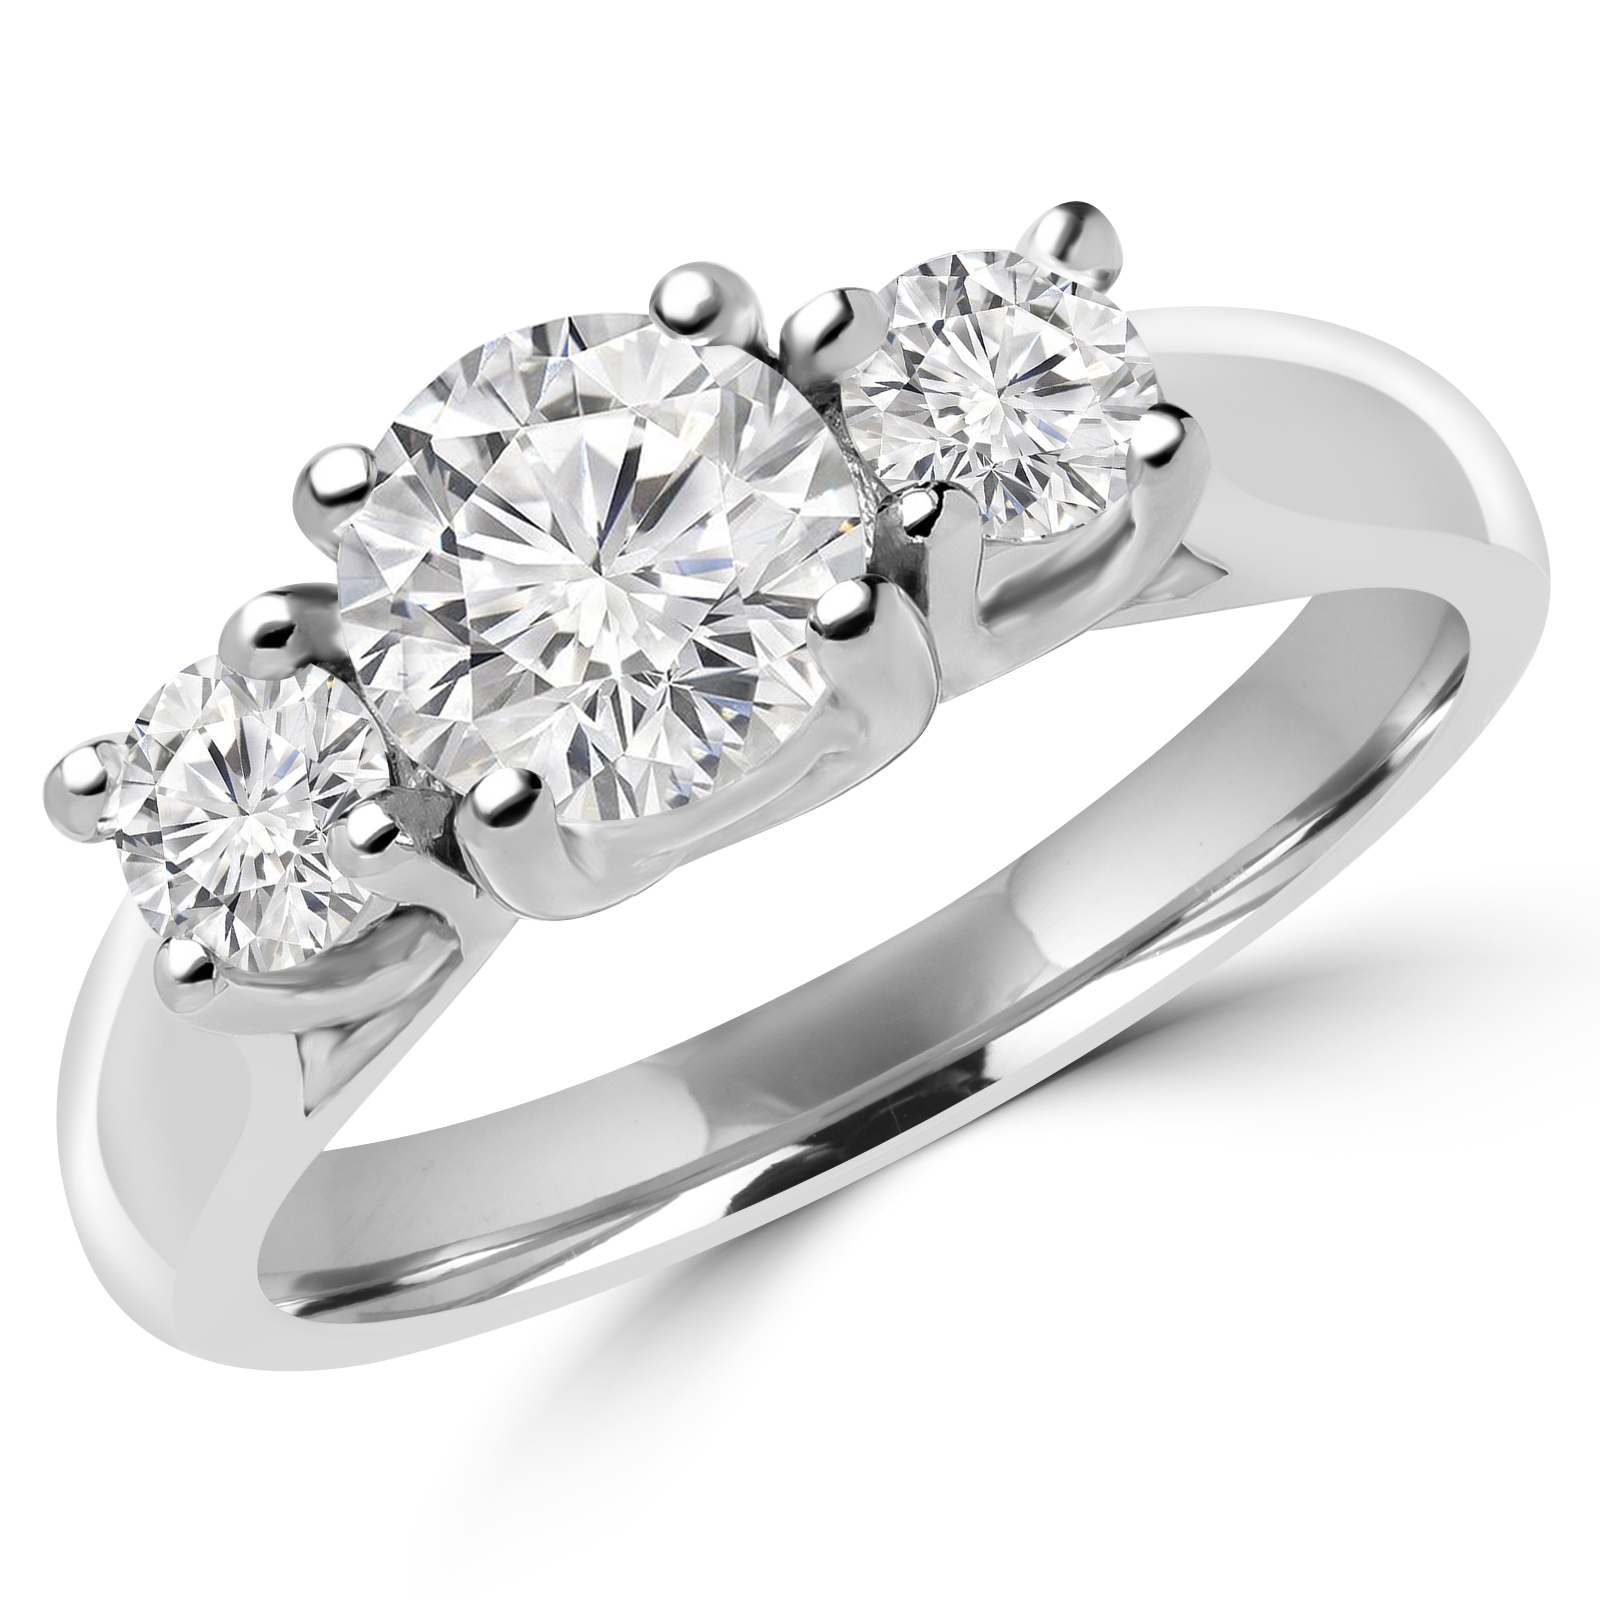 Majesty Diamonds Announces Release of Three Stone Engagement Ring